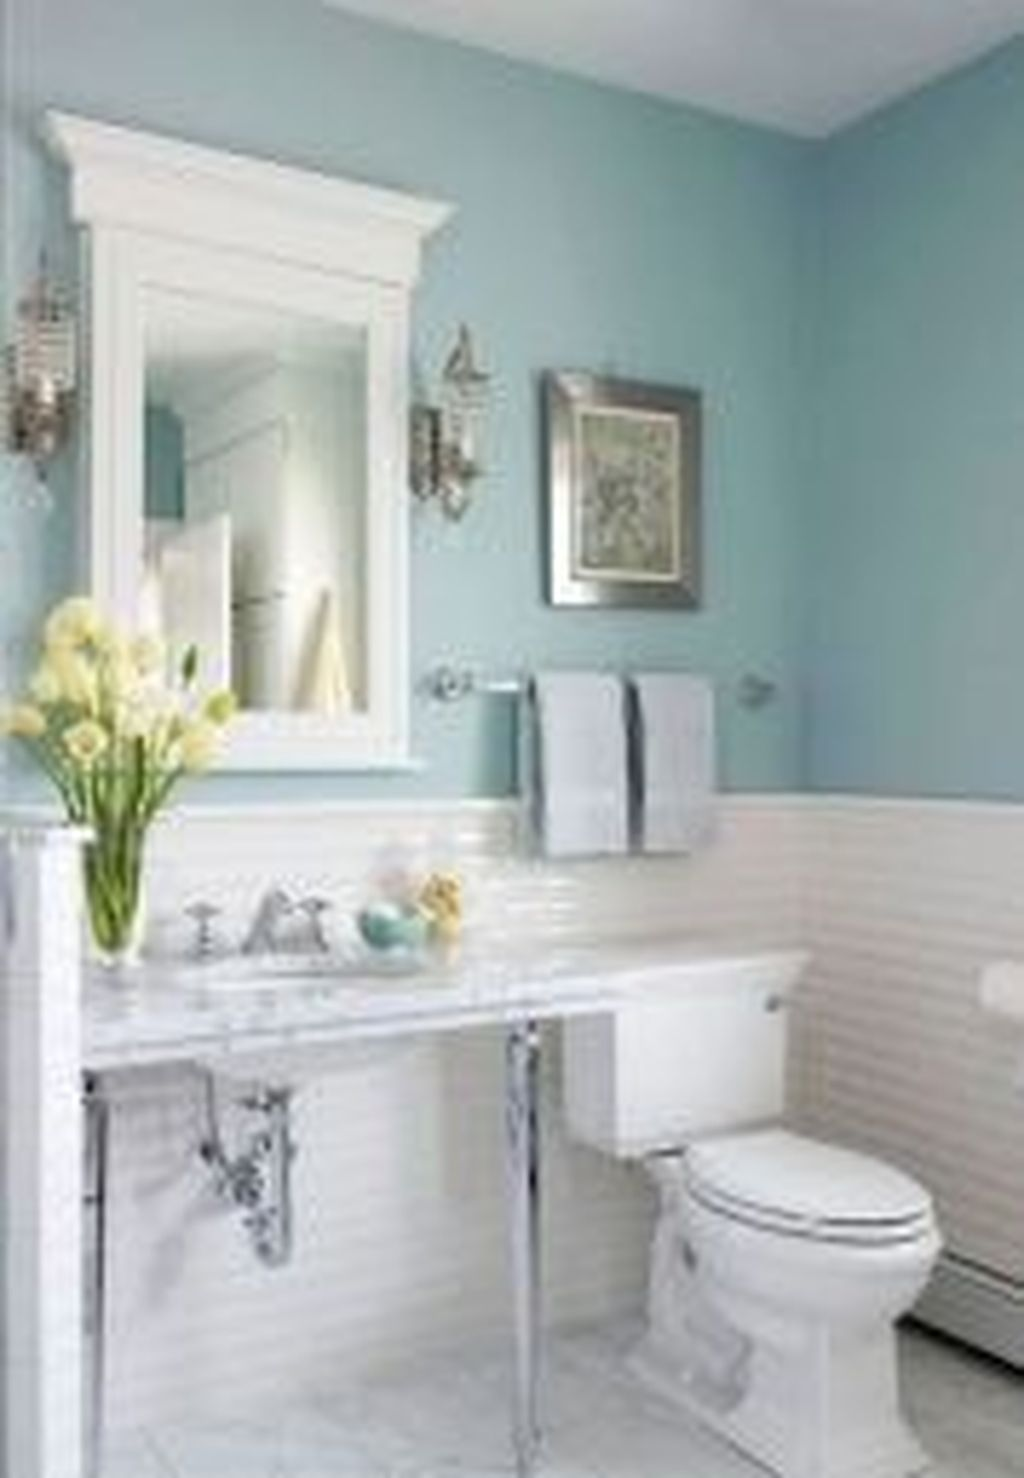 astounding light blue bathroom ideas | Amazing Blue Hued Bathroom Remodel Ideas 13 | Blue ...